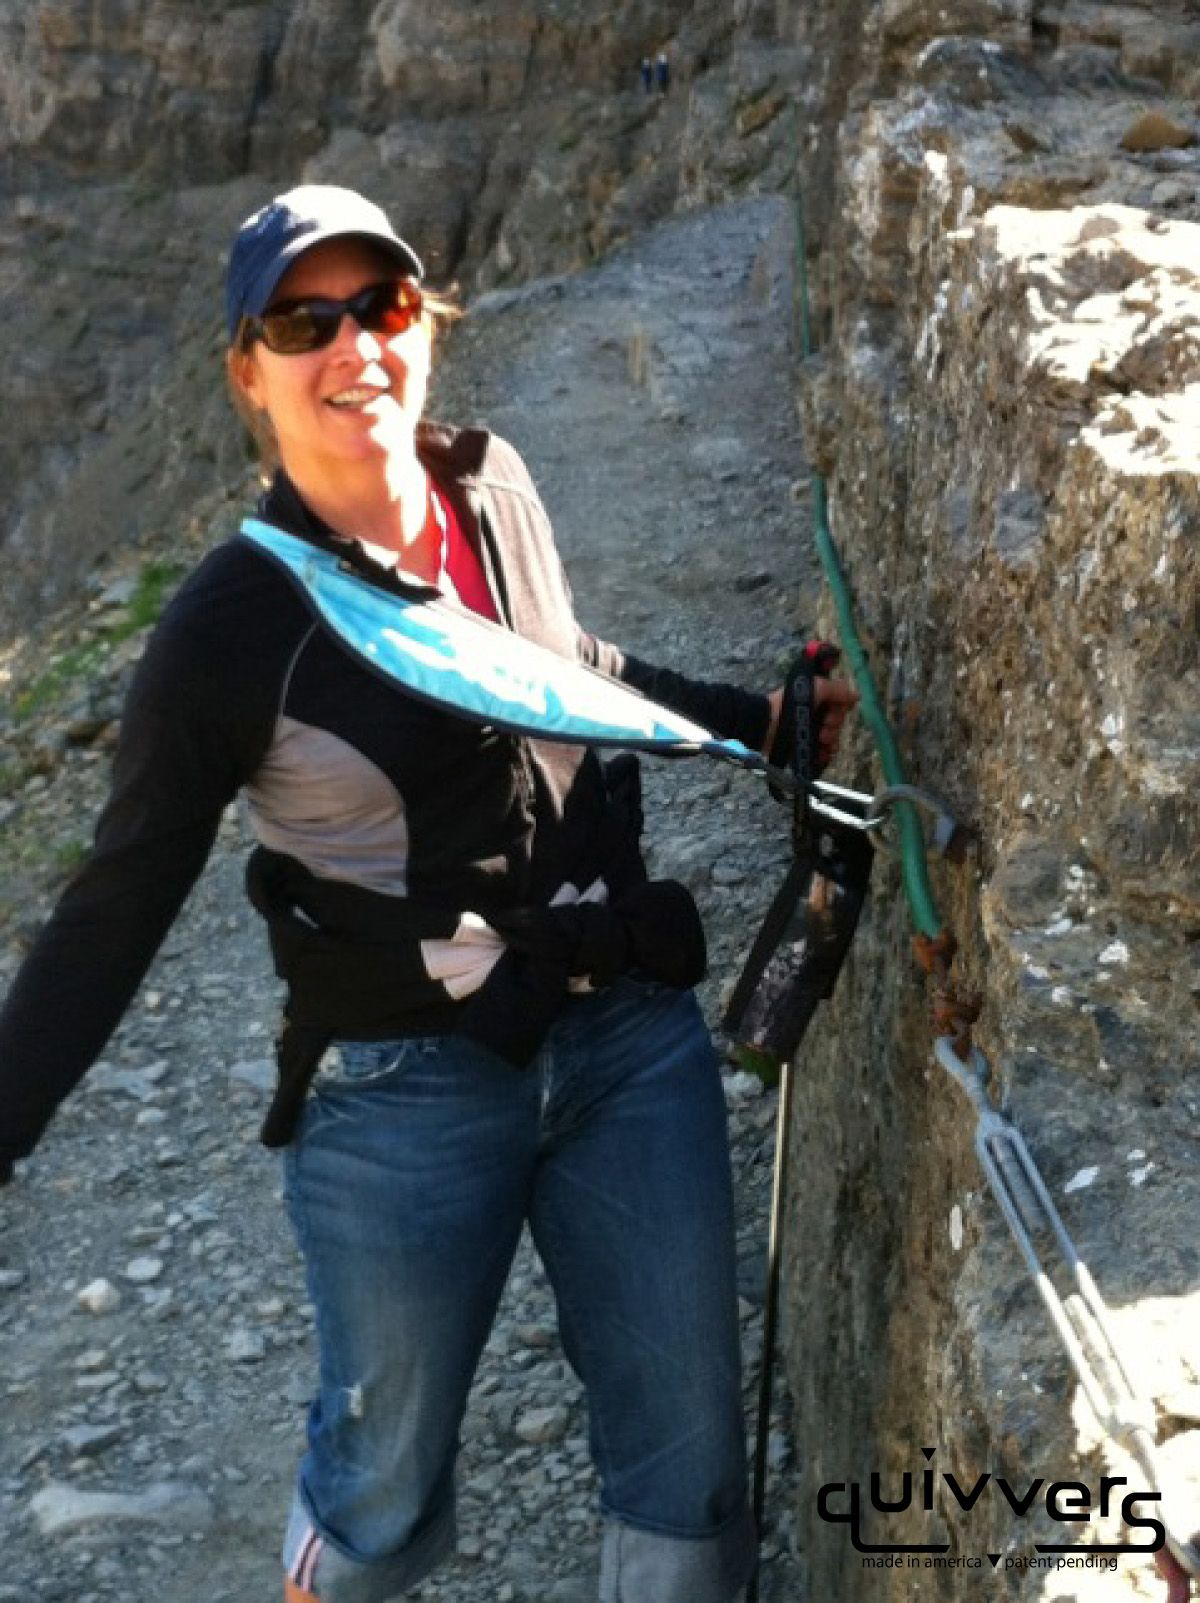 The Quivver saved my life :) Hiking the high line trial over the garden wall in Glacier National Park…with bear spray attached..HA! #quivvers #quivvering    - Jen Sato